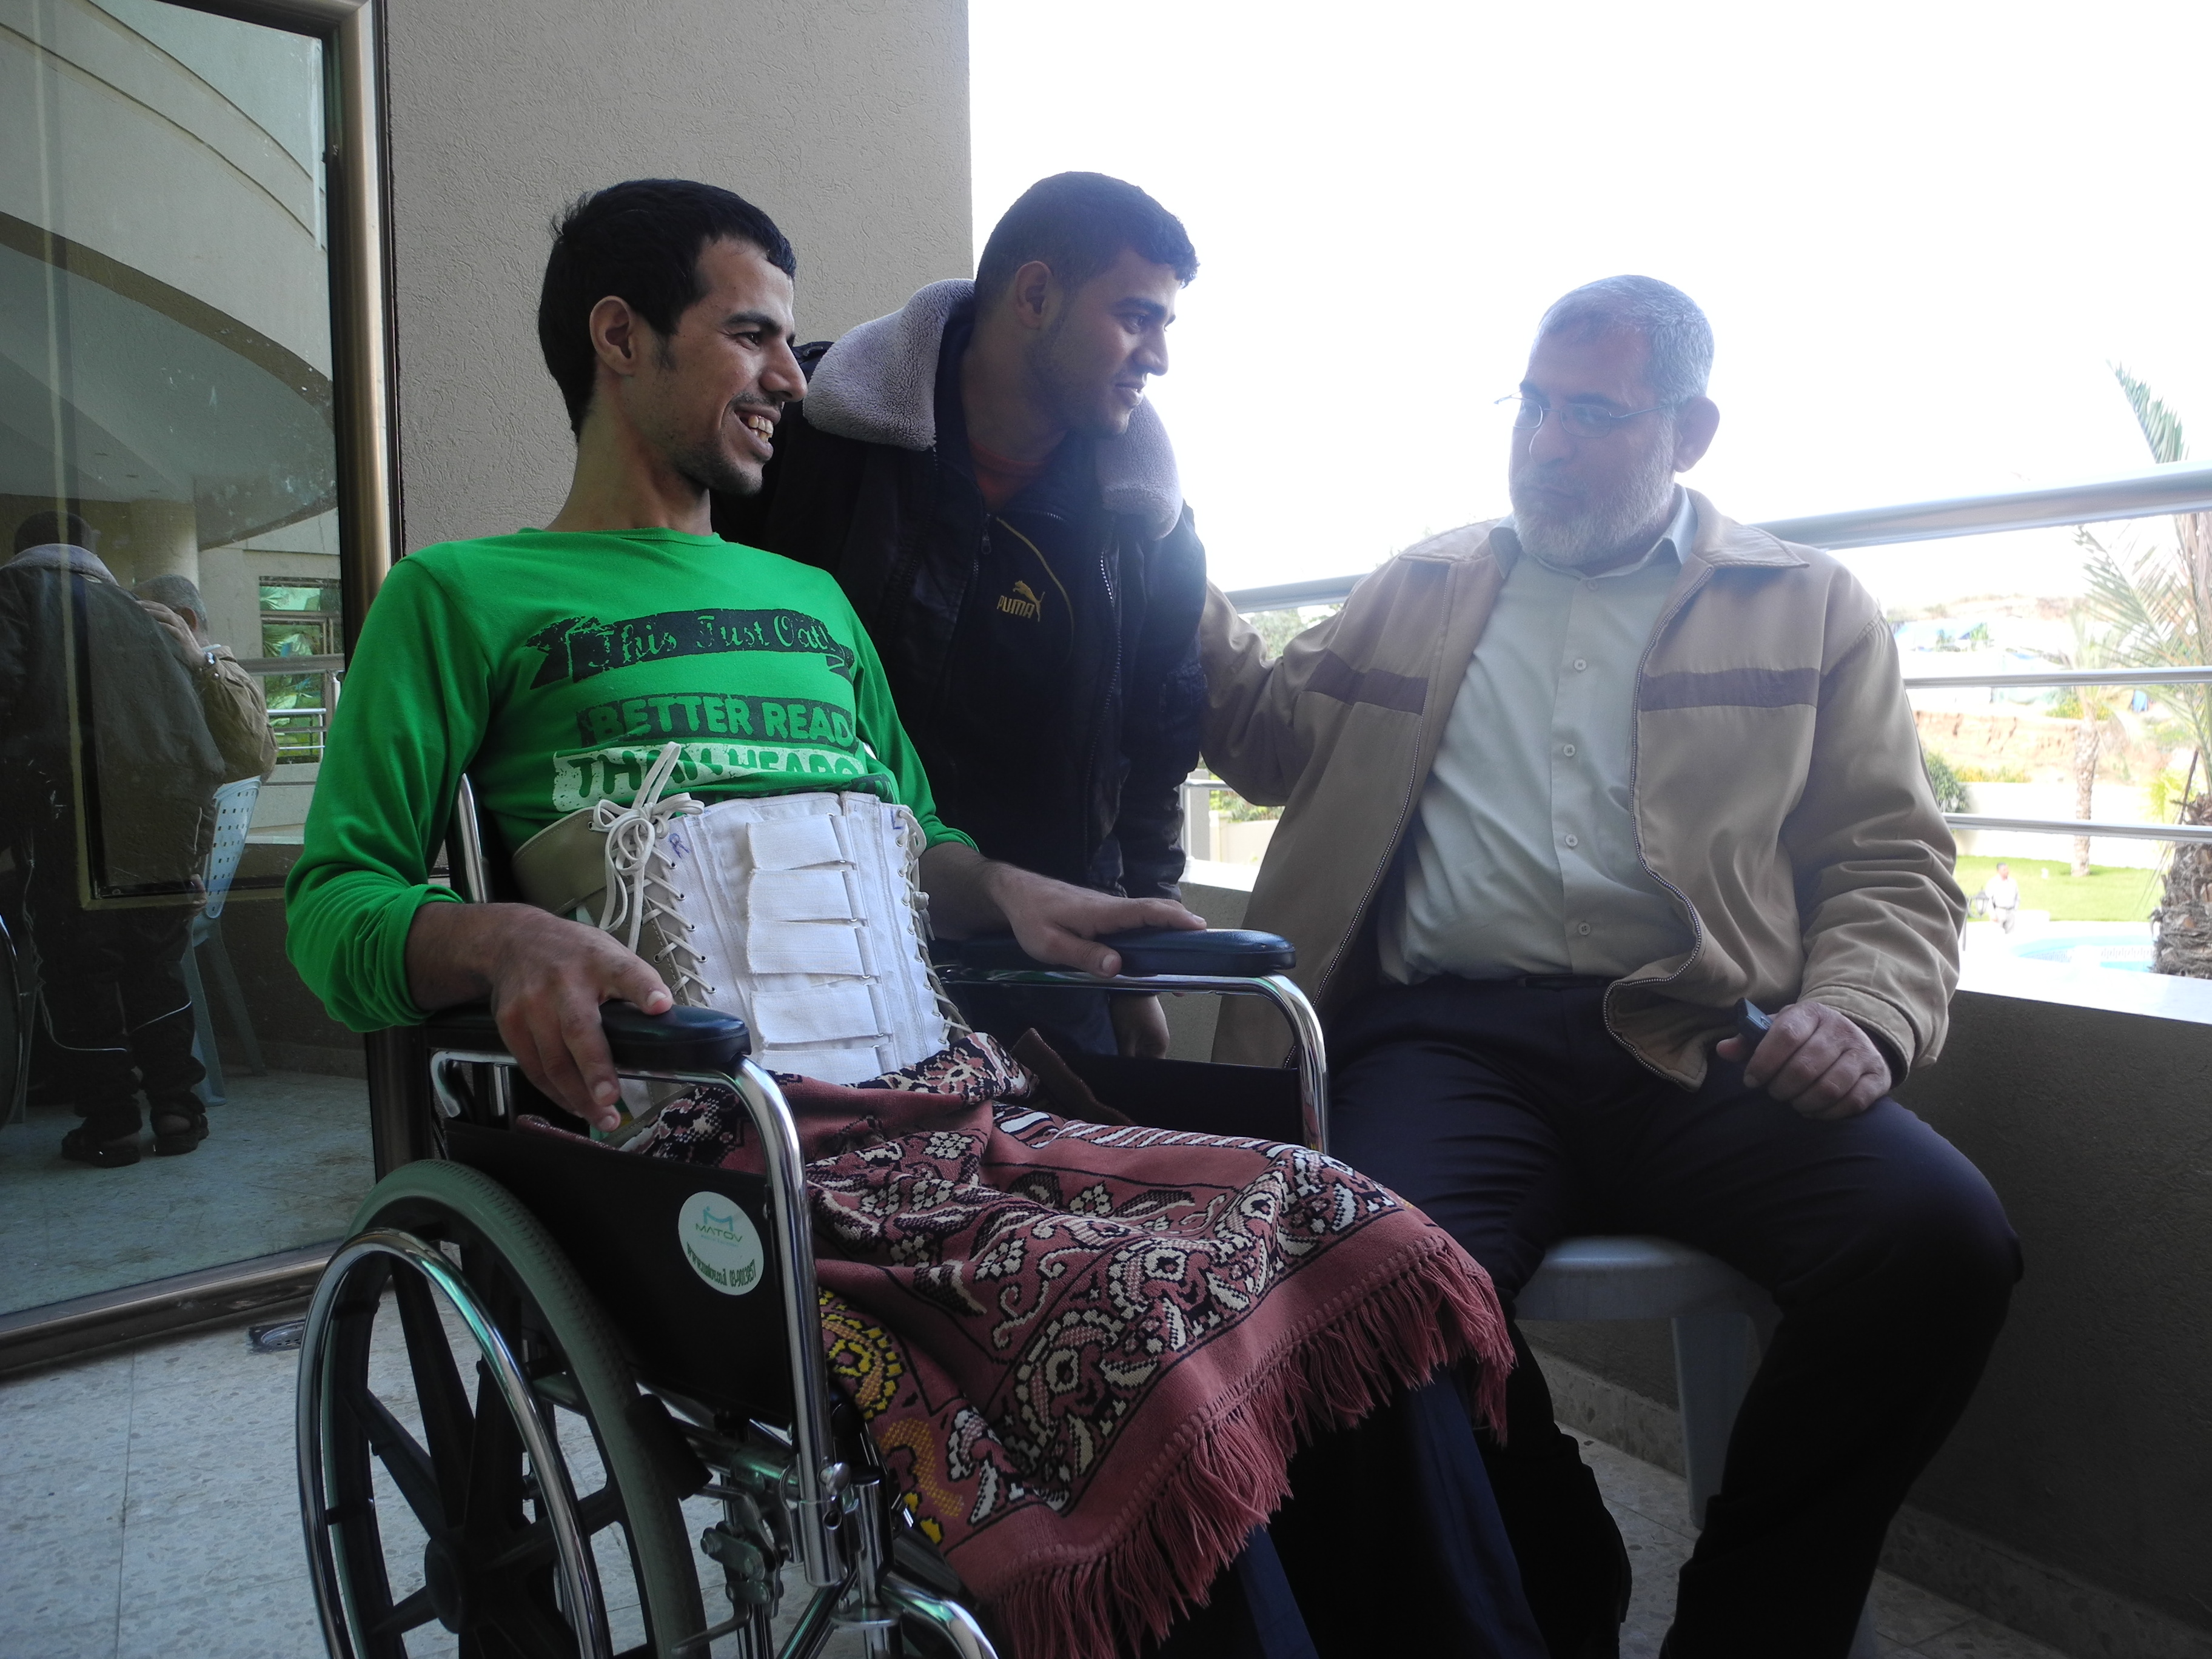 Abdelaziz, his brother (left), and Ali Abu Riala, the head of nursing department at Al-Wafa hospital (right).